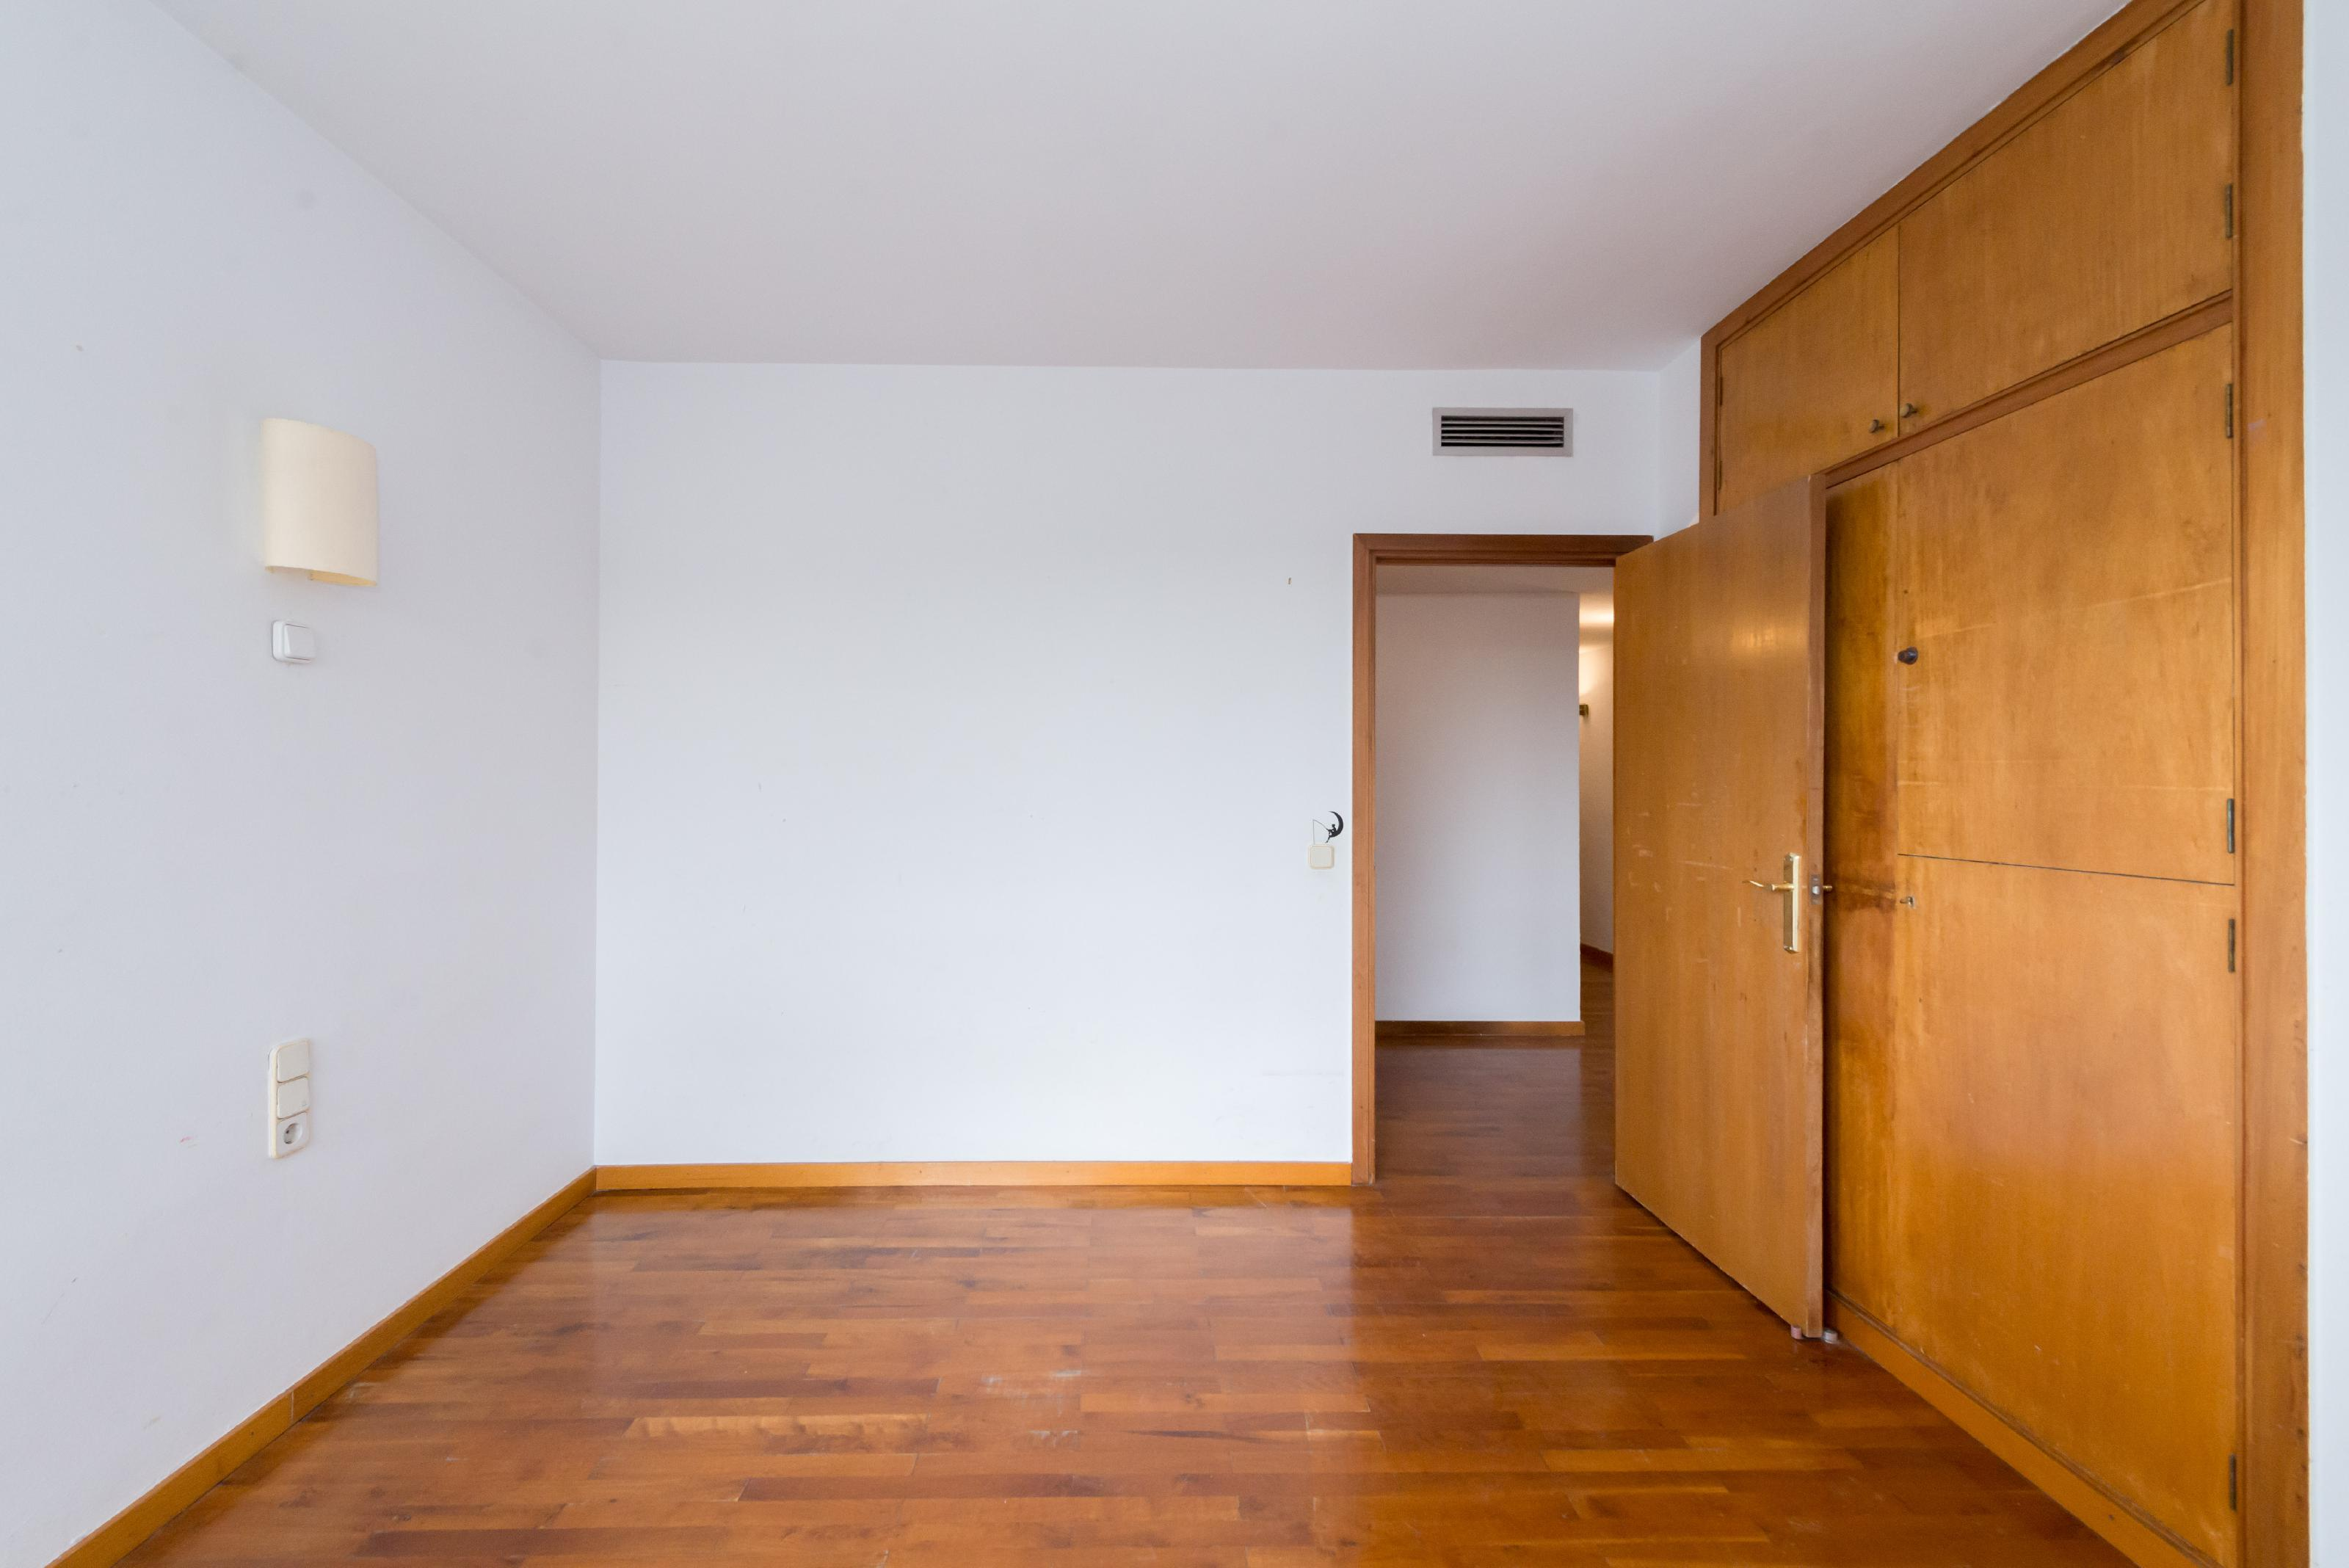 245495 Penthouse for sale in Les Corts, Pedralbes 34